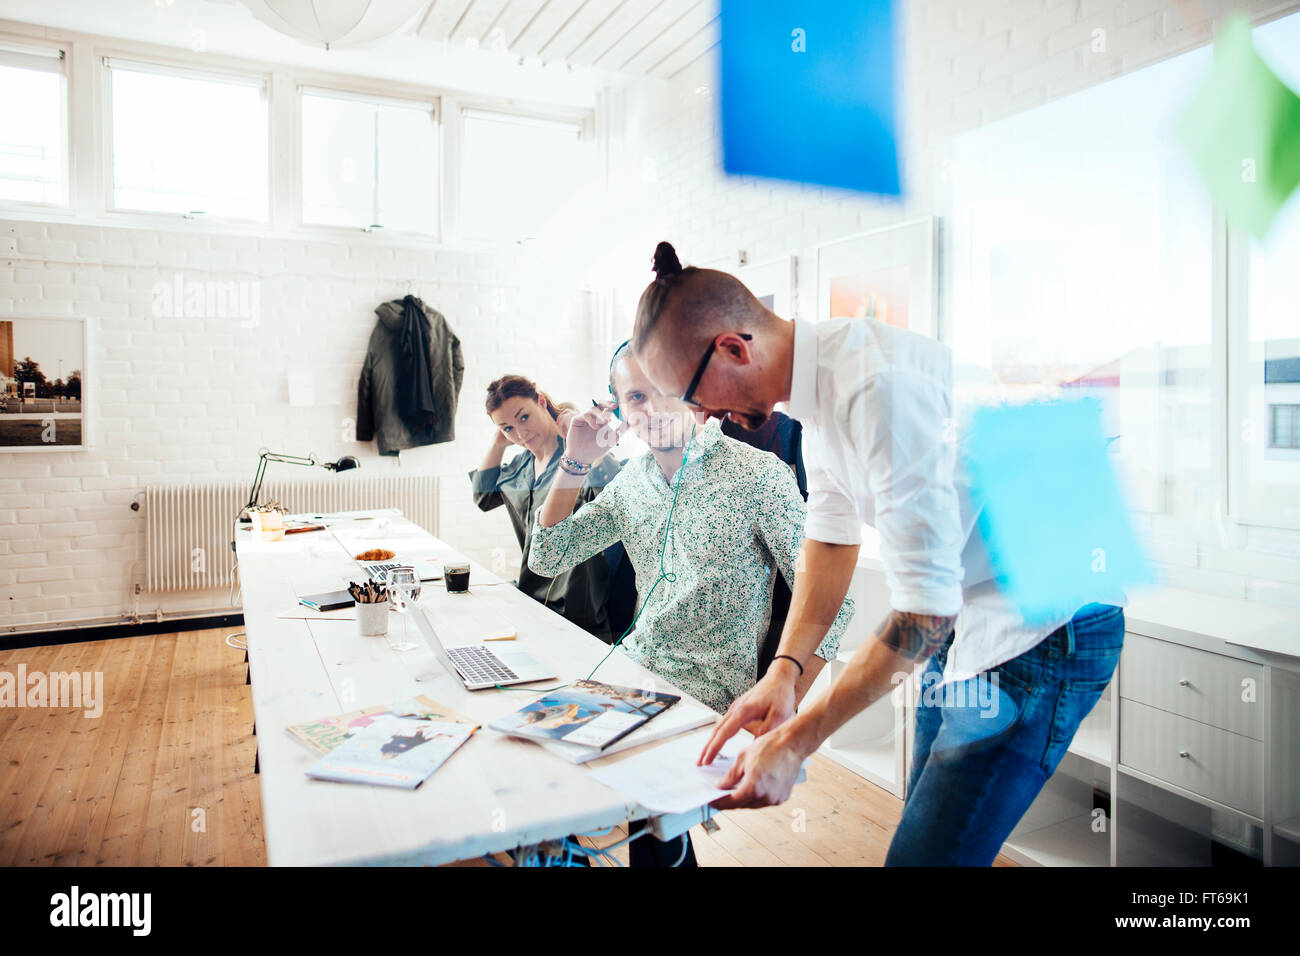 Team of business people working at table in creative office - Stock Image